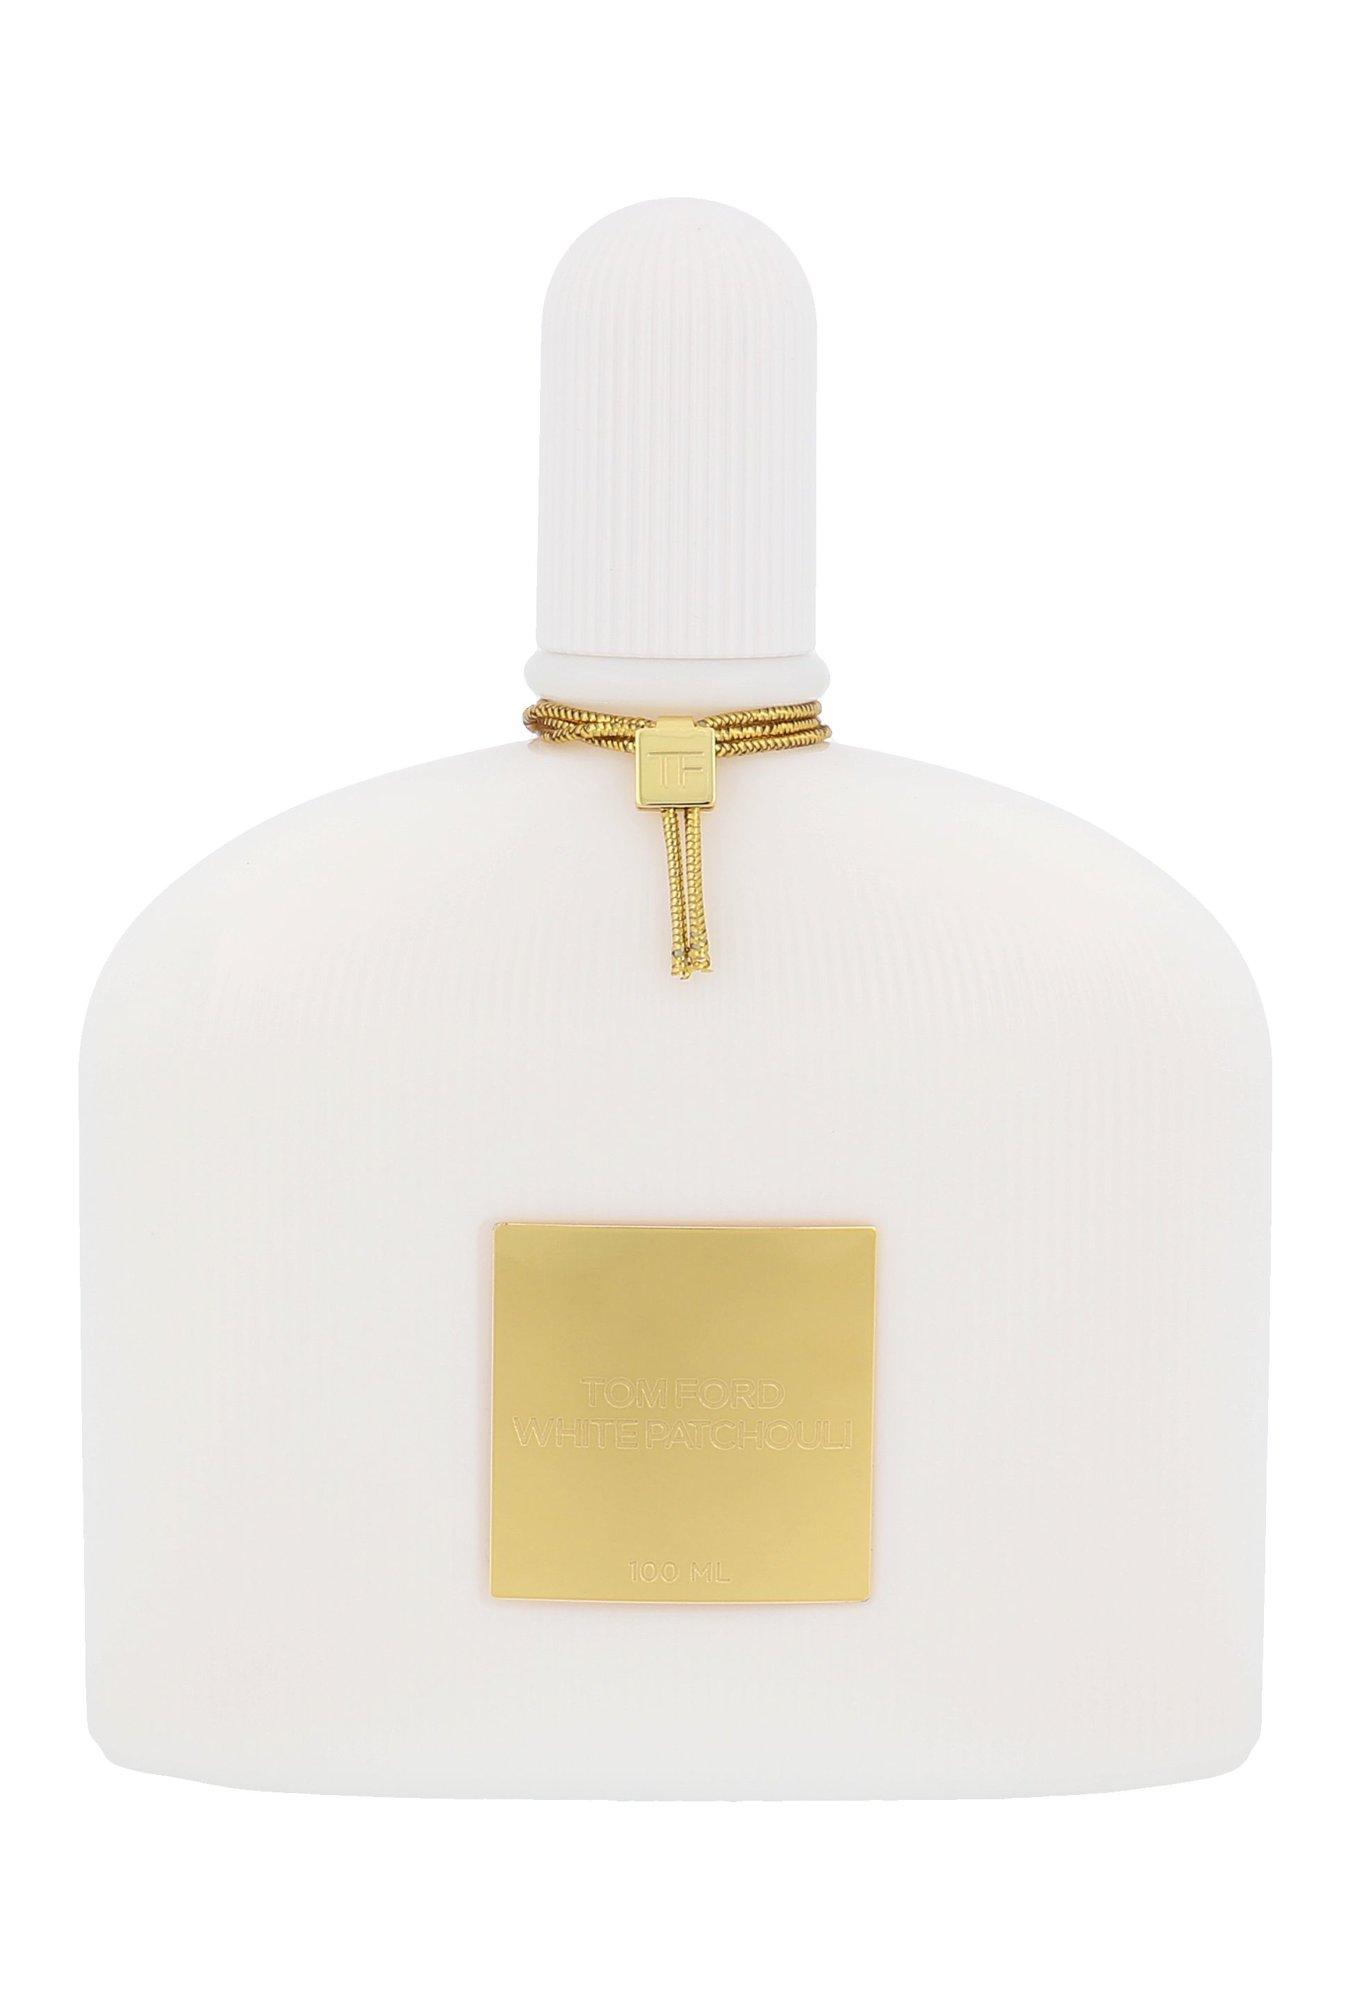 TOM FORD White Patchouli EDP 100ml